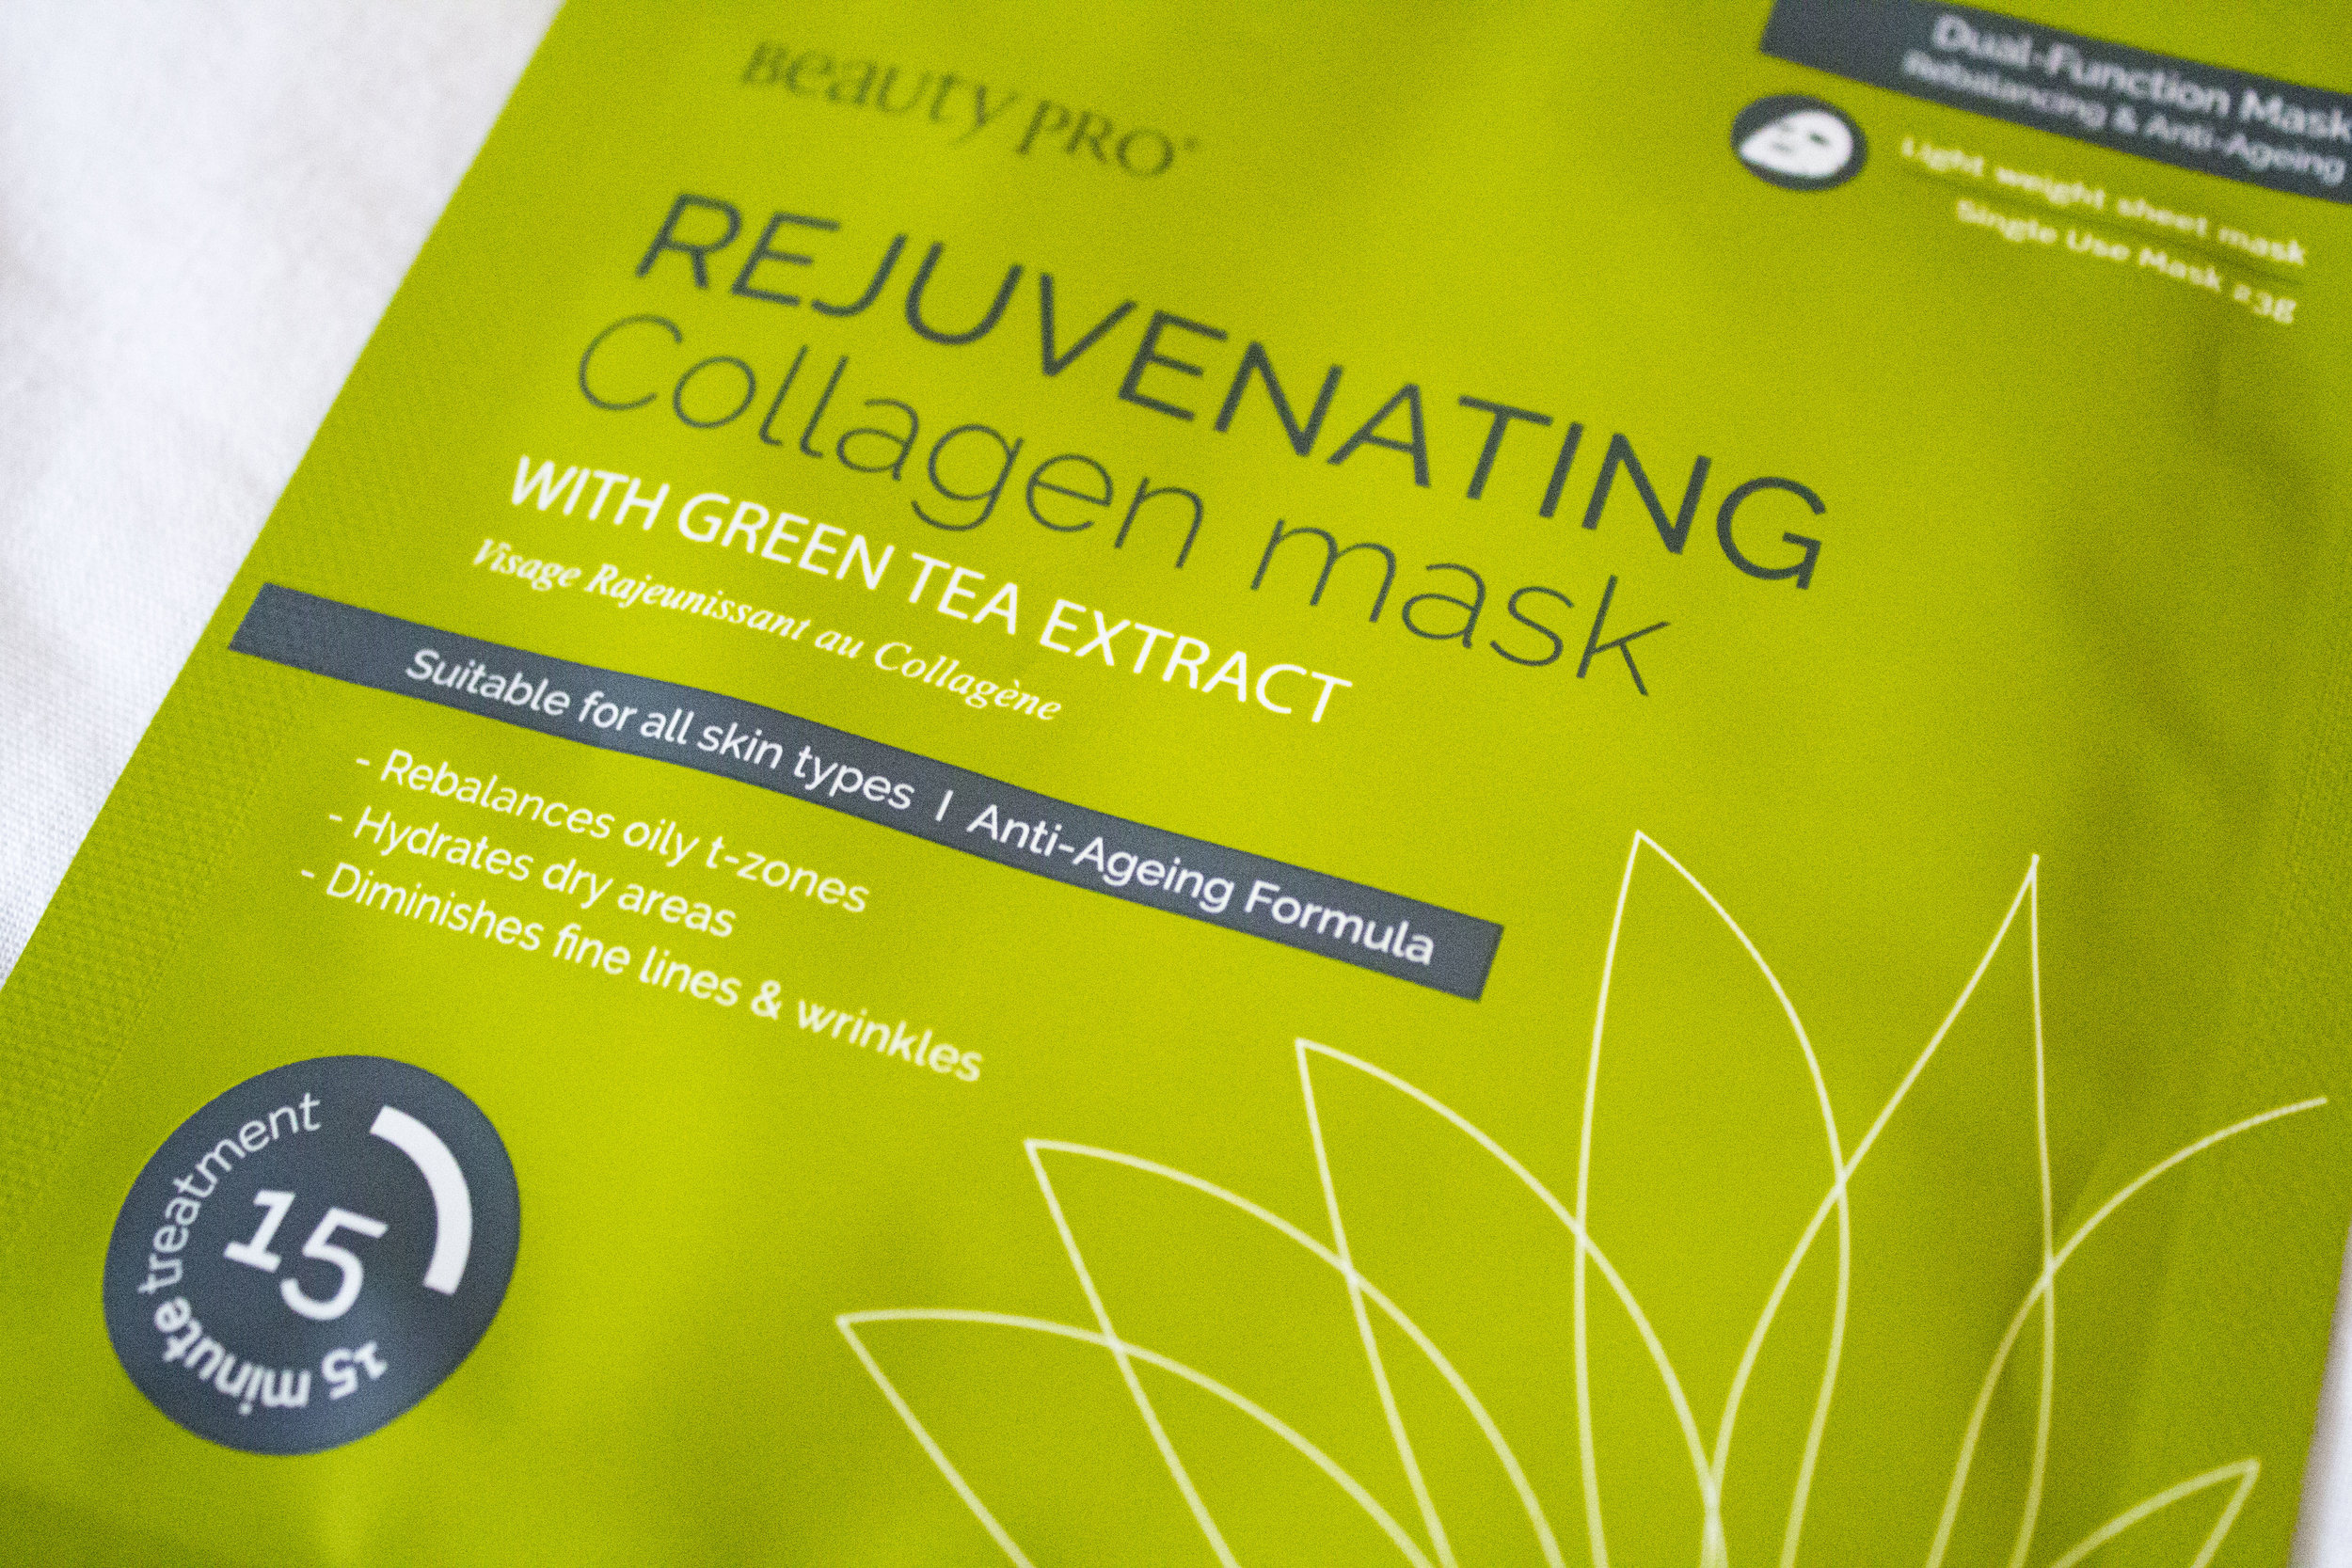 Beauty pro rejuvenating collagen sheet mask